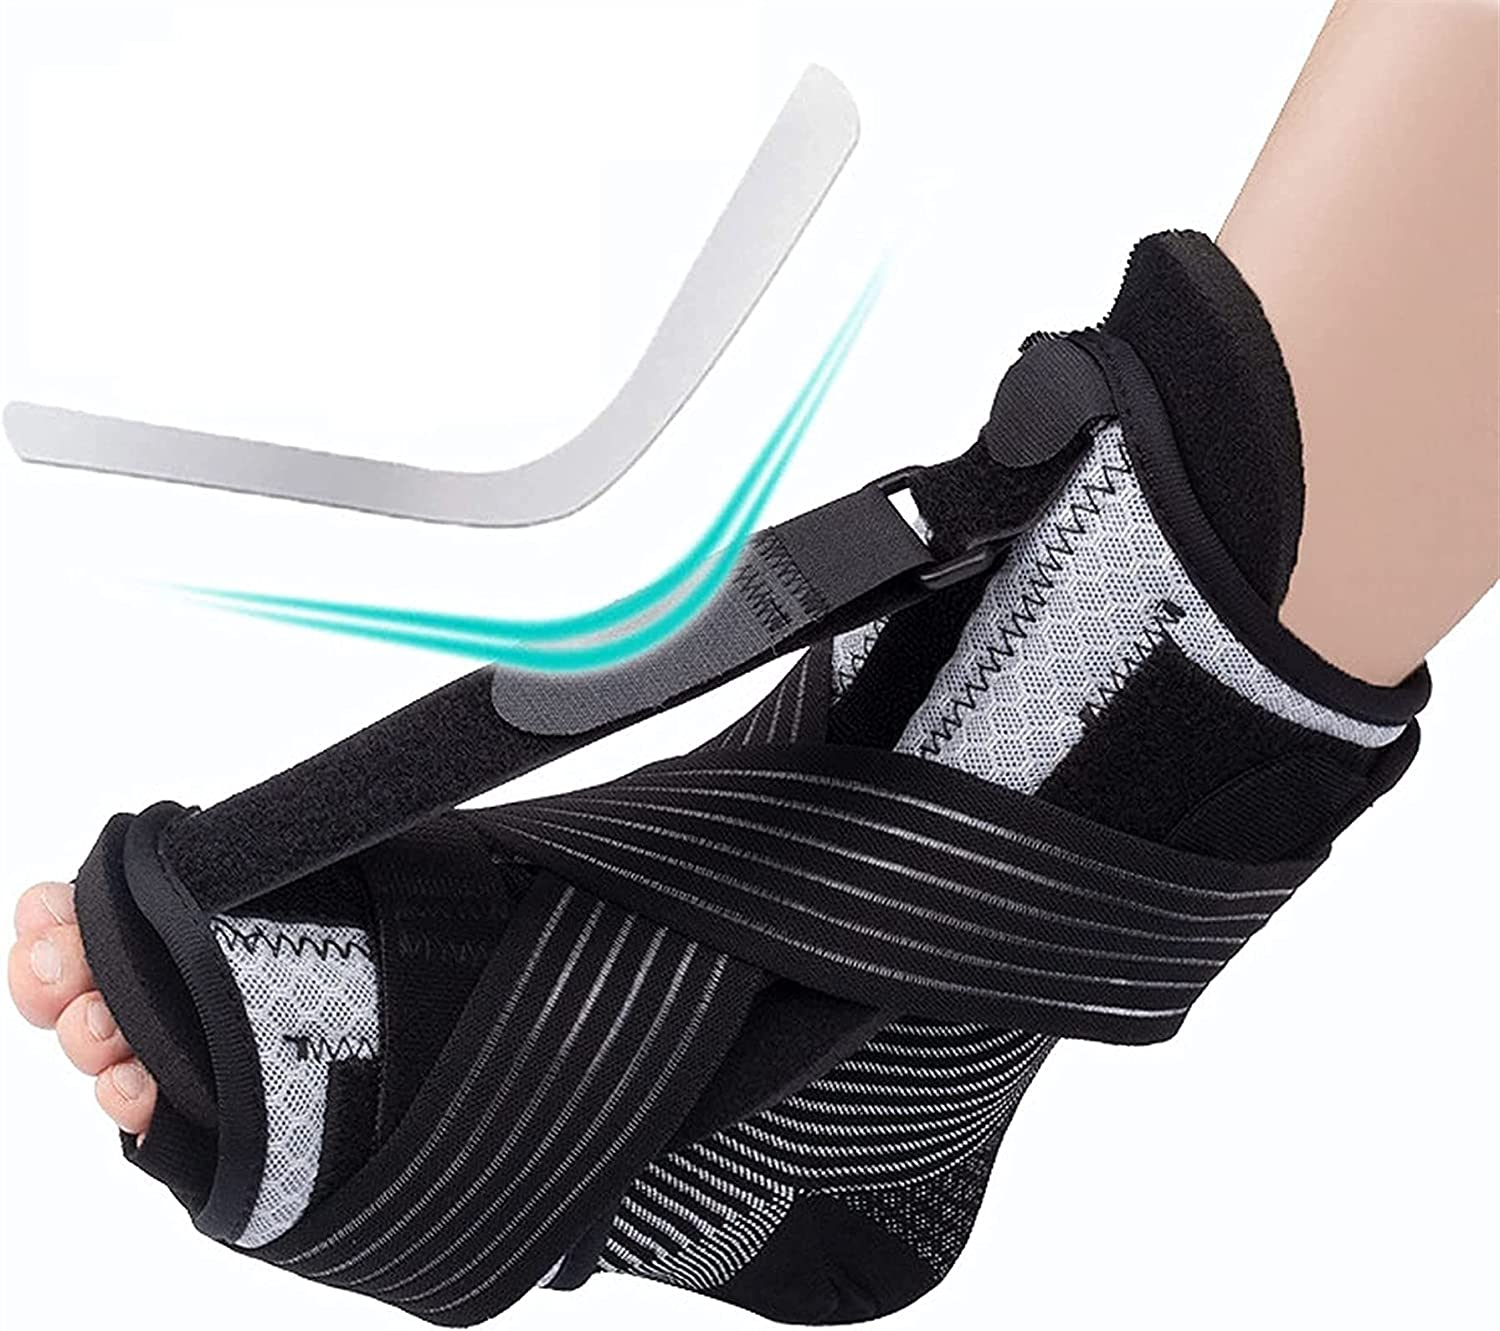 Foot Drop Support Brace Women for Manufacturer regenerated product Feet Orthosis Dallas Mall Men Ar